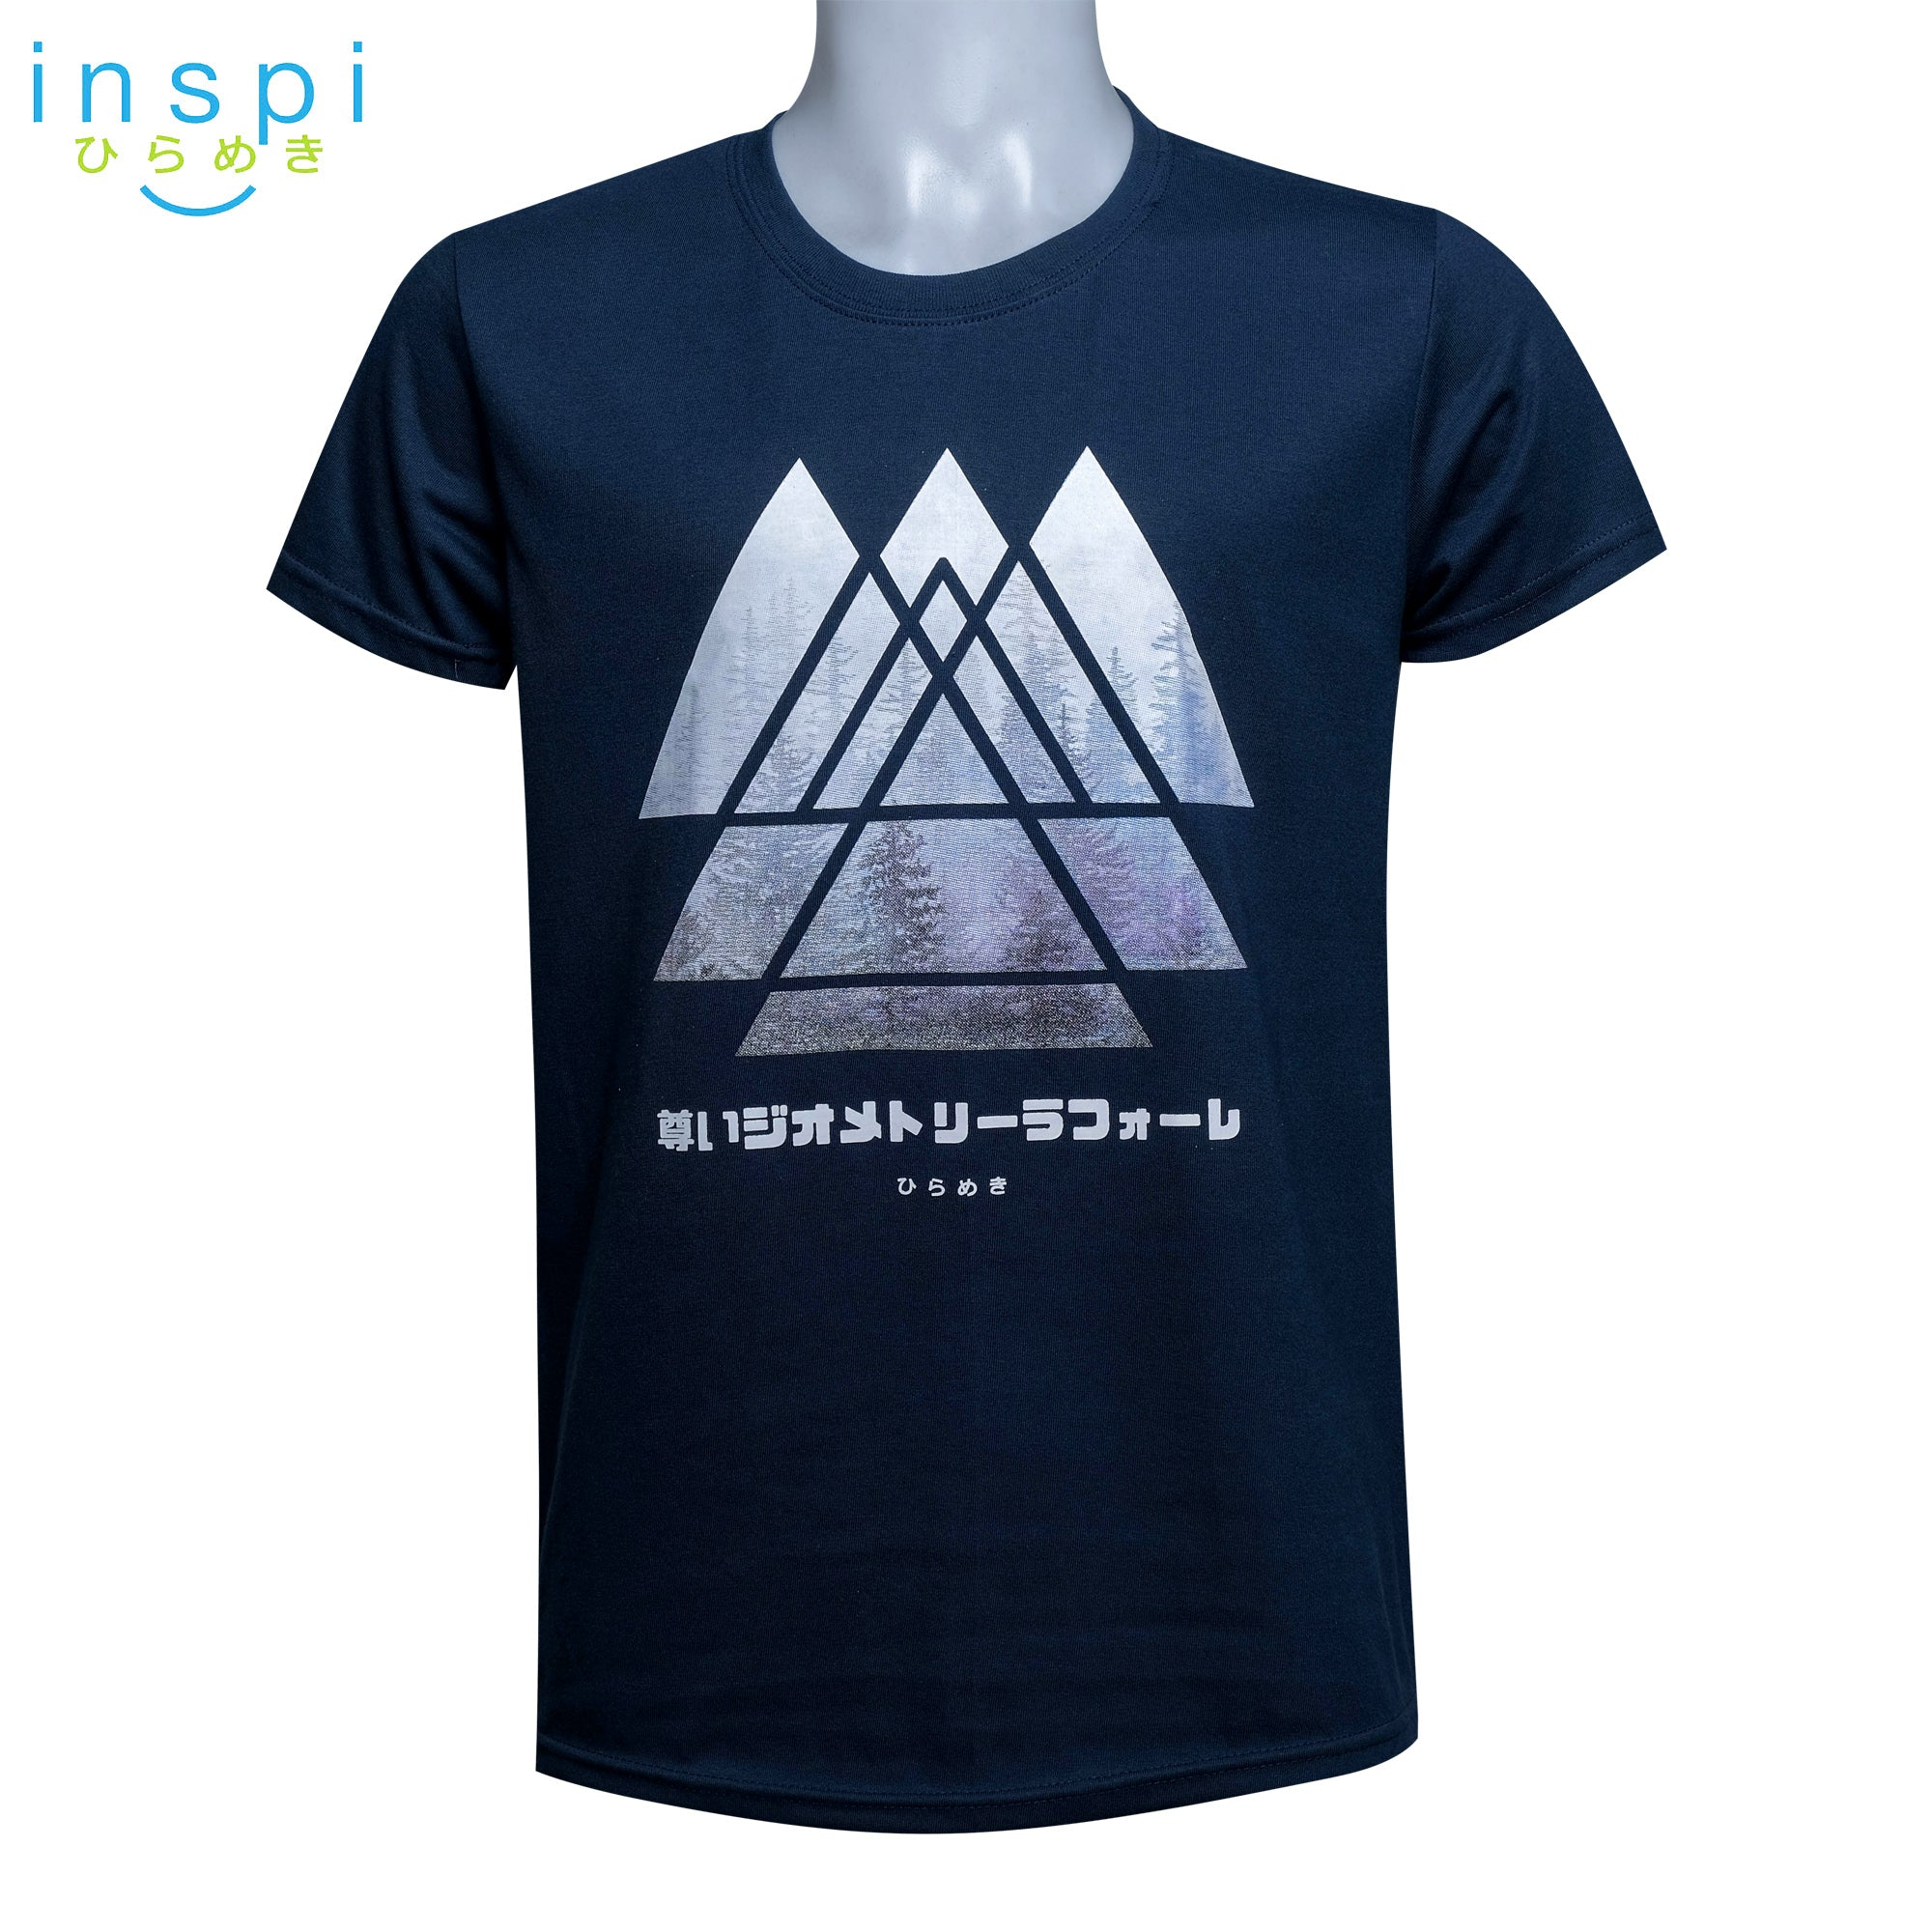 INSPI Tees Sacred Geometry Forest Graphic Tshirt in Navy Blue